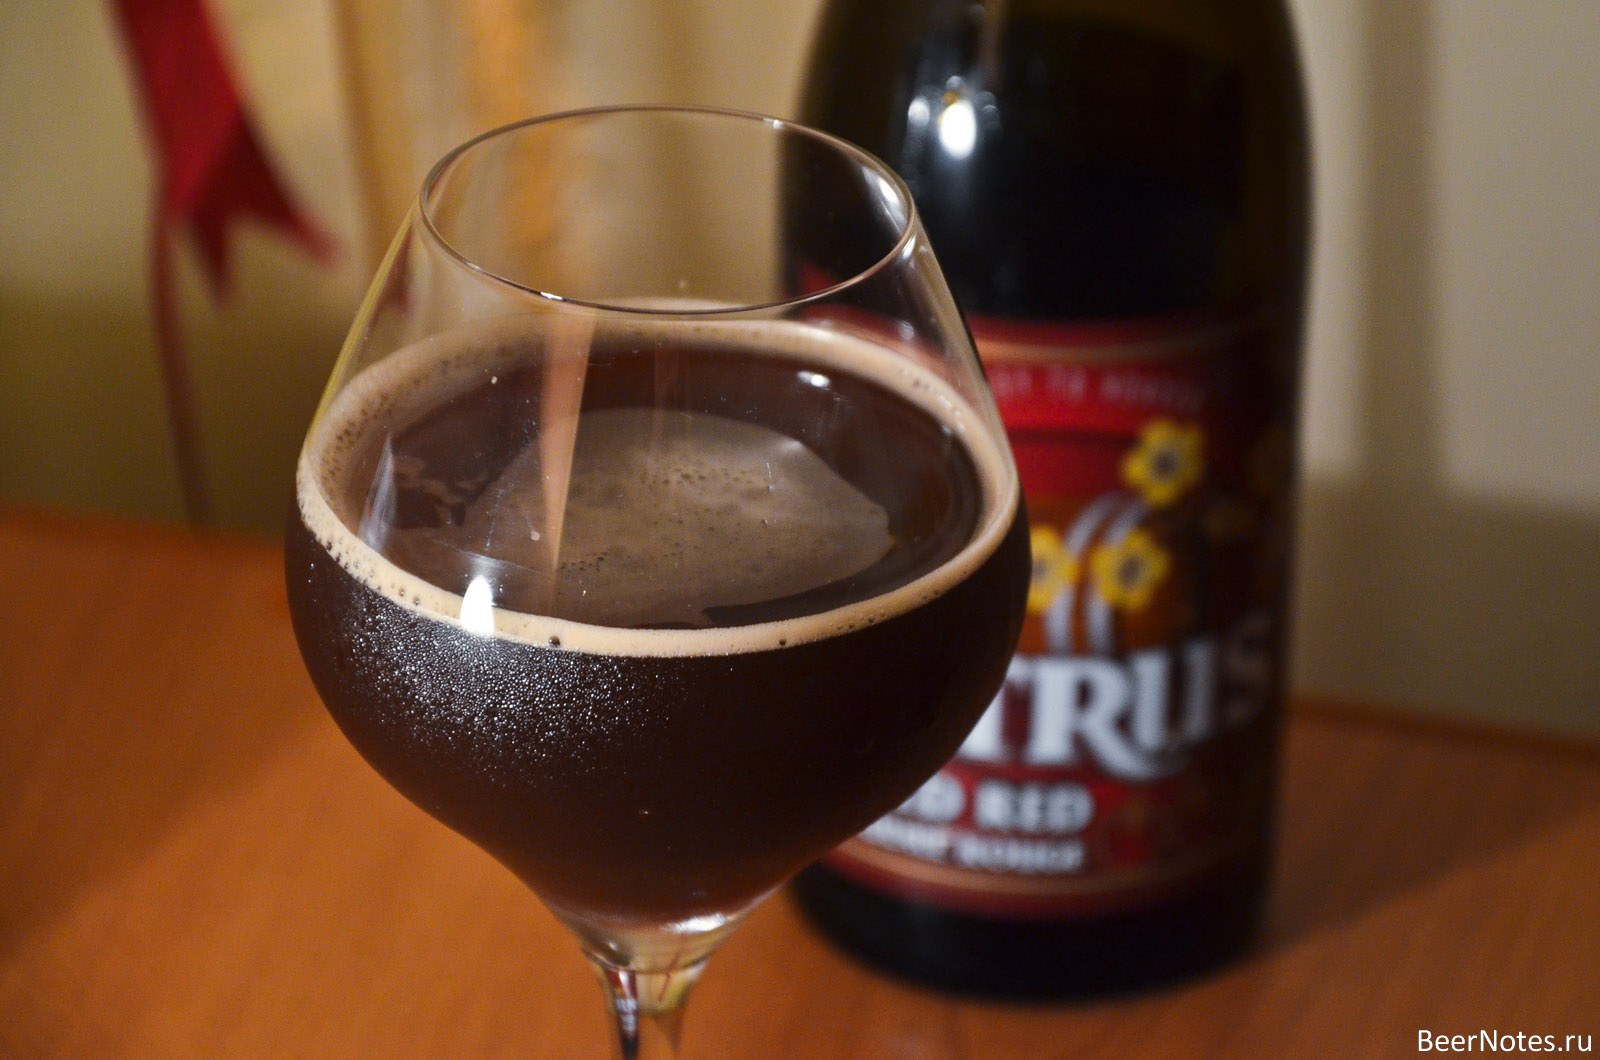 Petrus Aged Red4